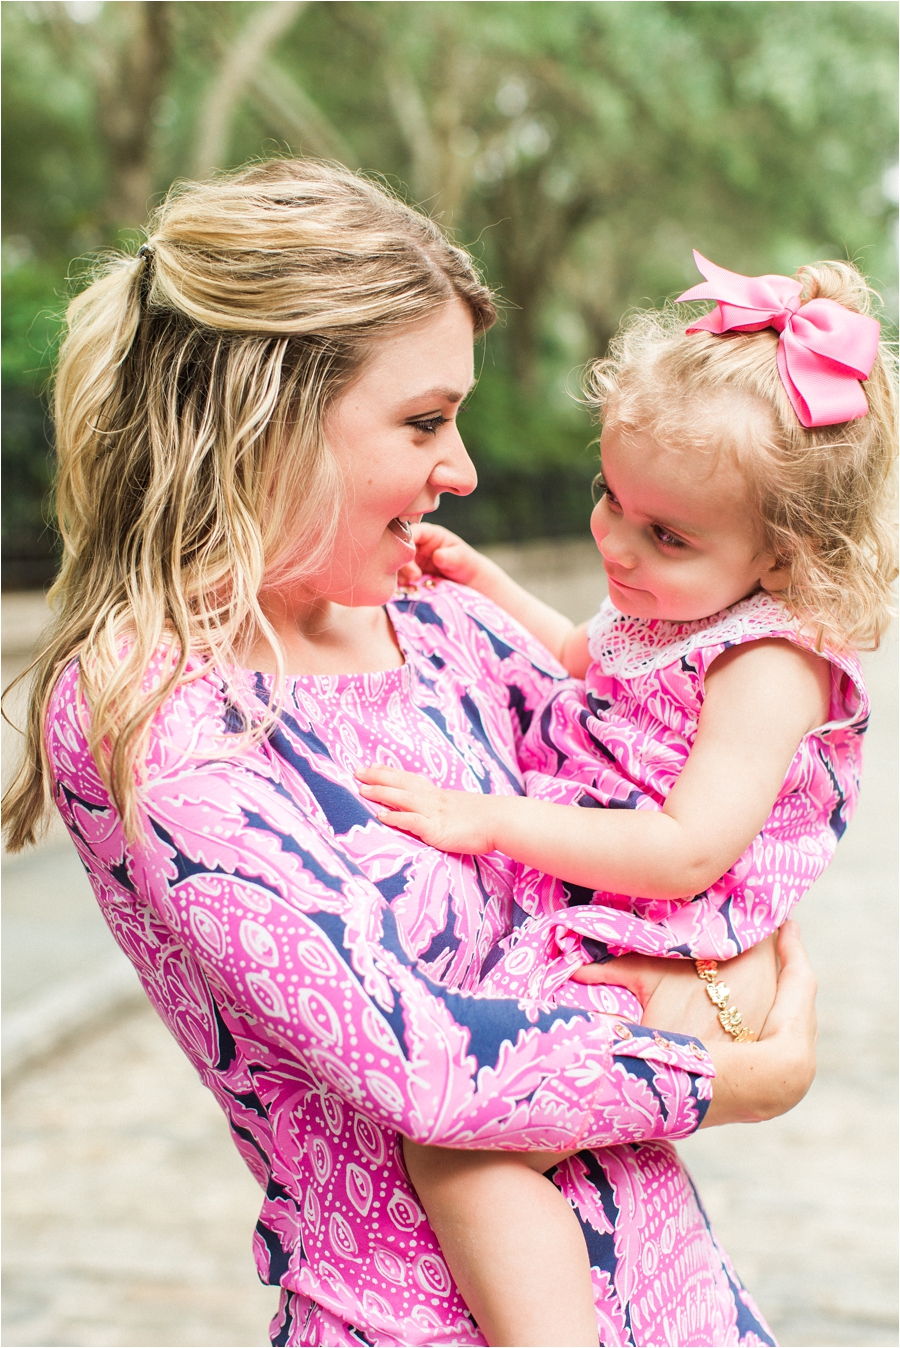 lilly pulitzer southern family session in charleston south carolina by charlottesville photographer, amy nicole photography_0009